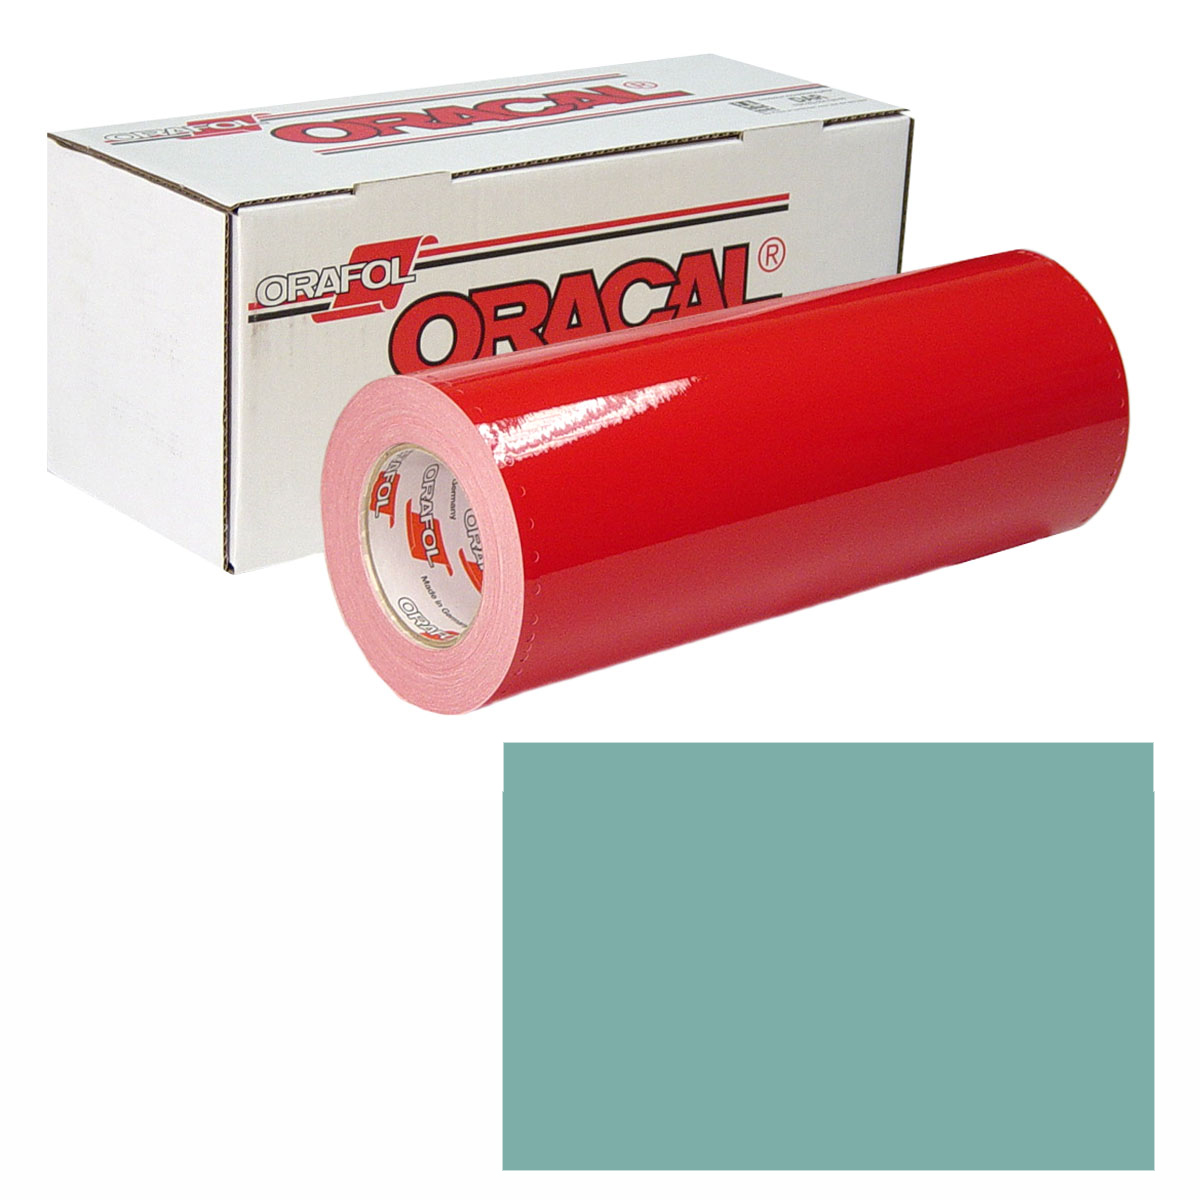 ORACAL 951M 15in X 10yd 674 Mint Metallic